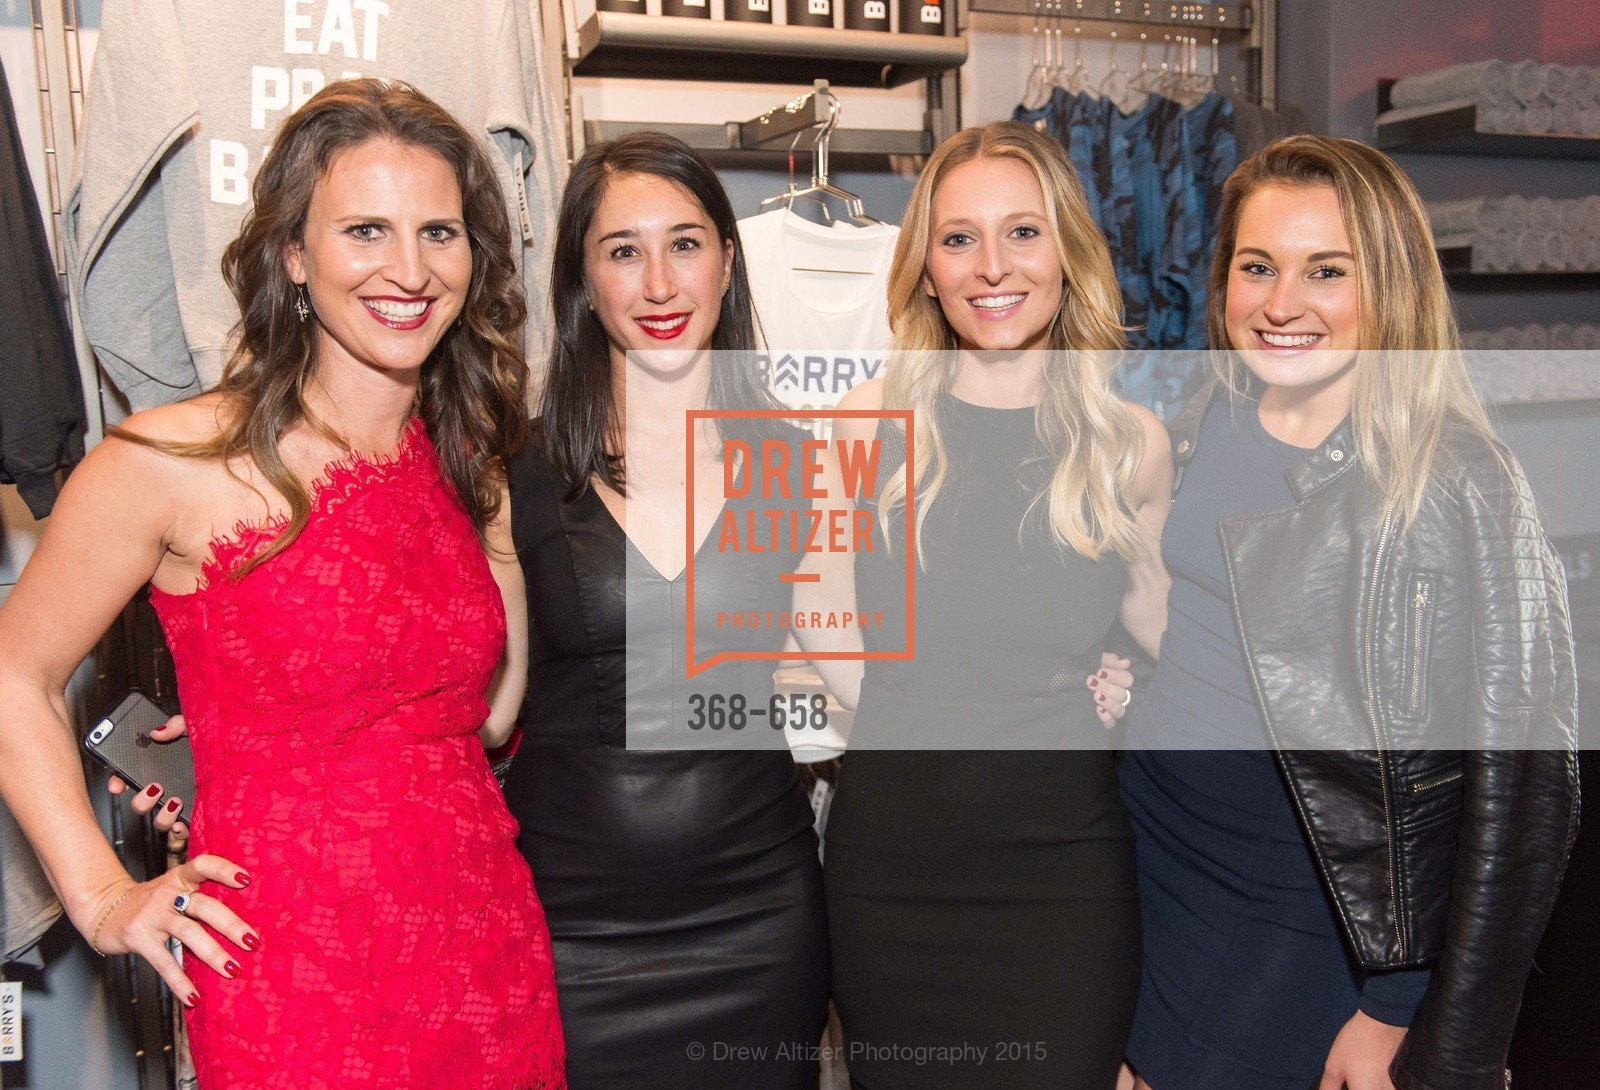 Jennifer Wade, Dina Rosenberg, Nicole Kraft, Nicole Engelhart, Barry's Marina Opening, Barry's. 2246 Lombard Street, December 17th, 2015,Drew Altizer, Drew Altizer Photography, full-service event agency, private events, San Francisco photographer, photographer California